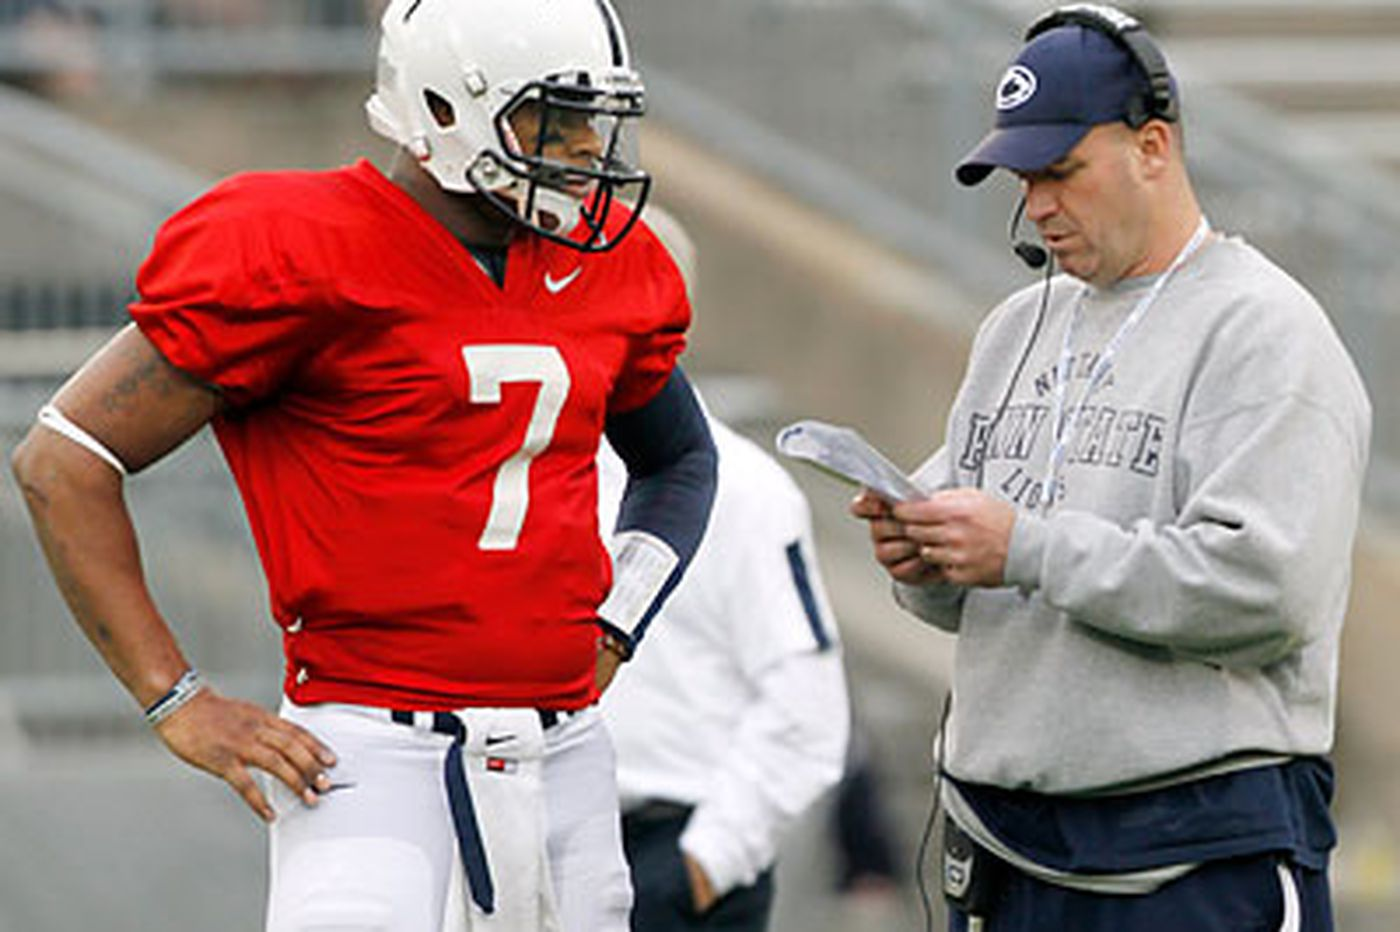 Penn State quarterback position remains unsettled